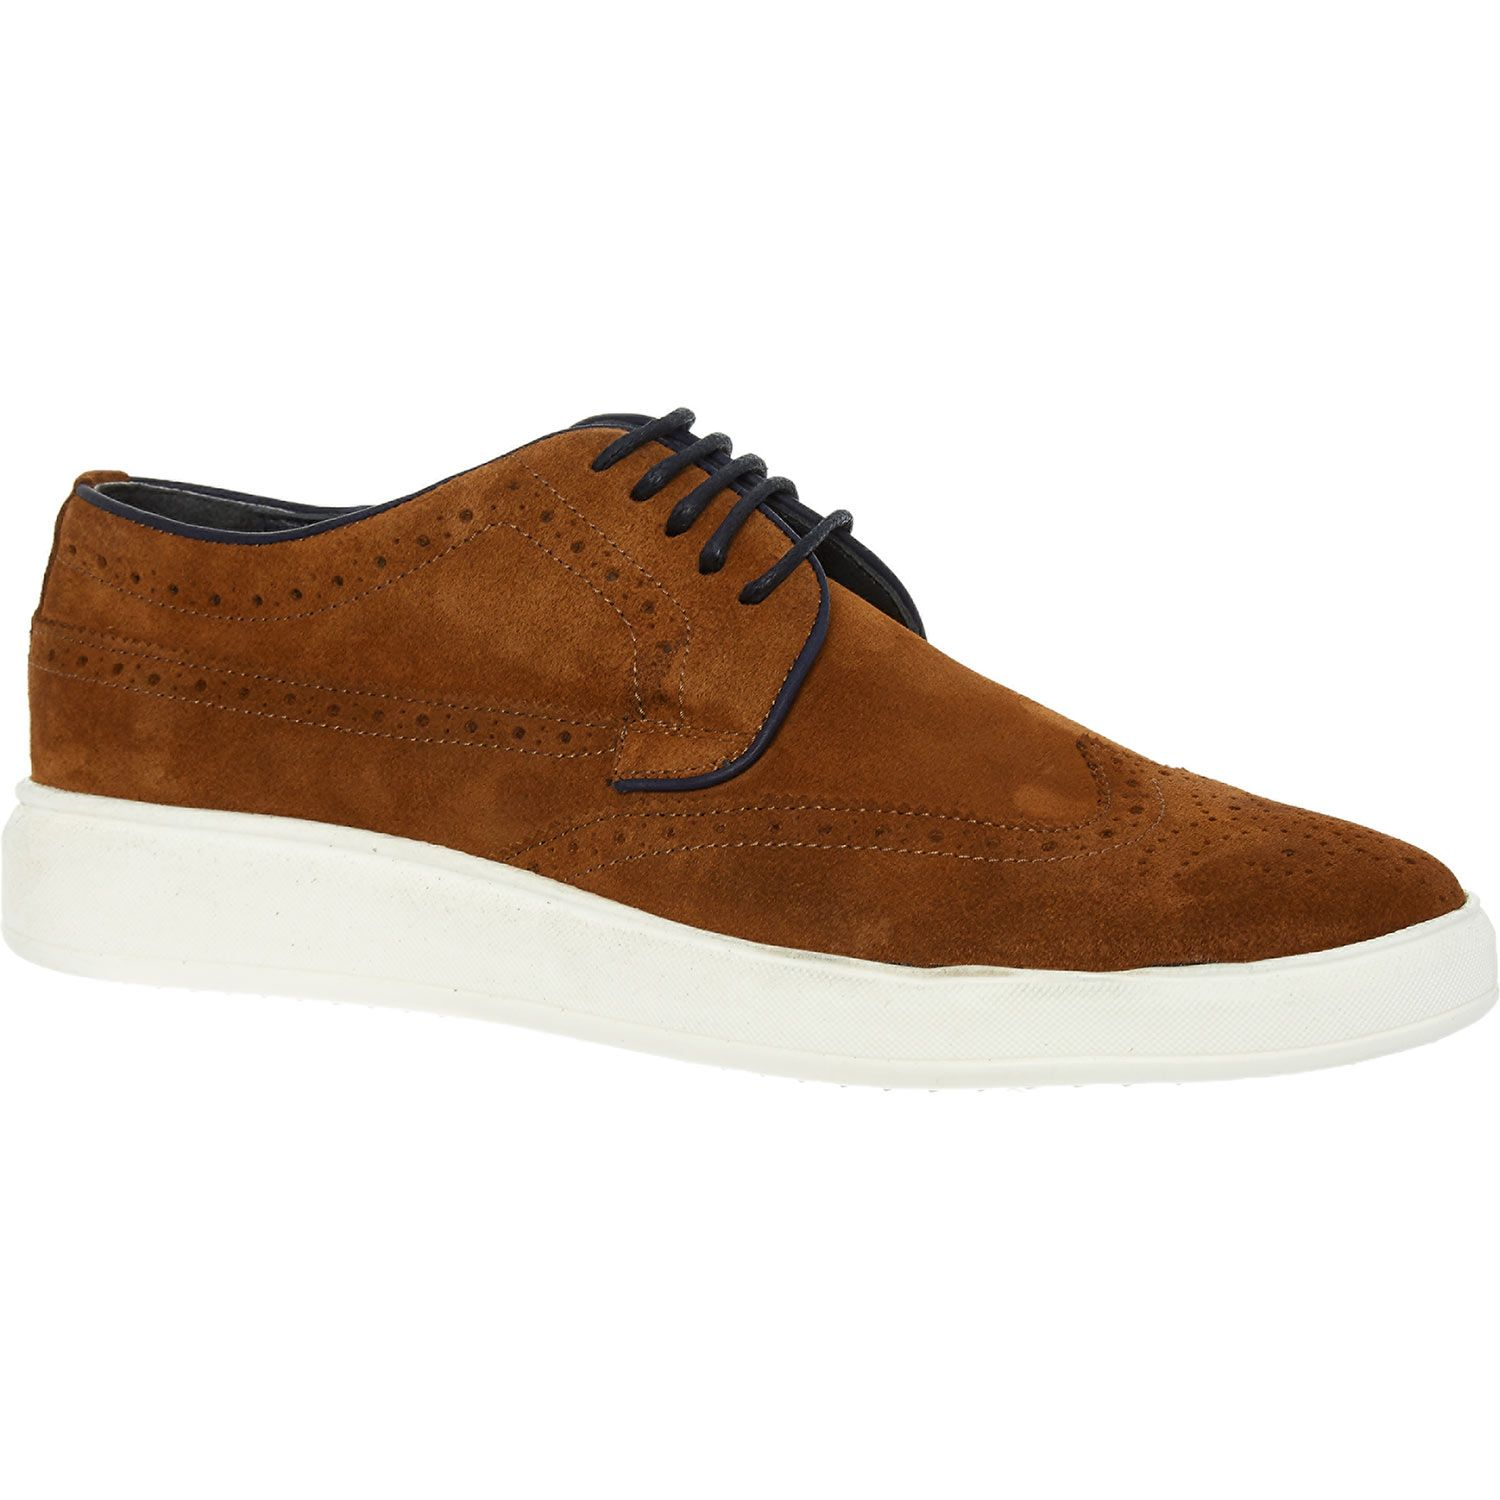 ted baker shoes tk maxx shoes for men